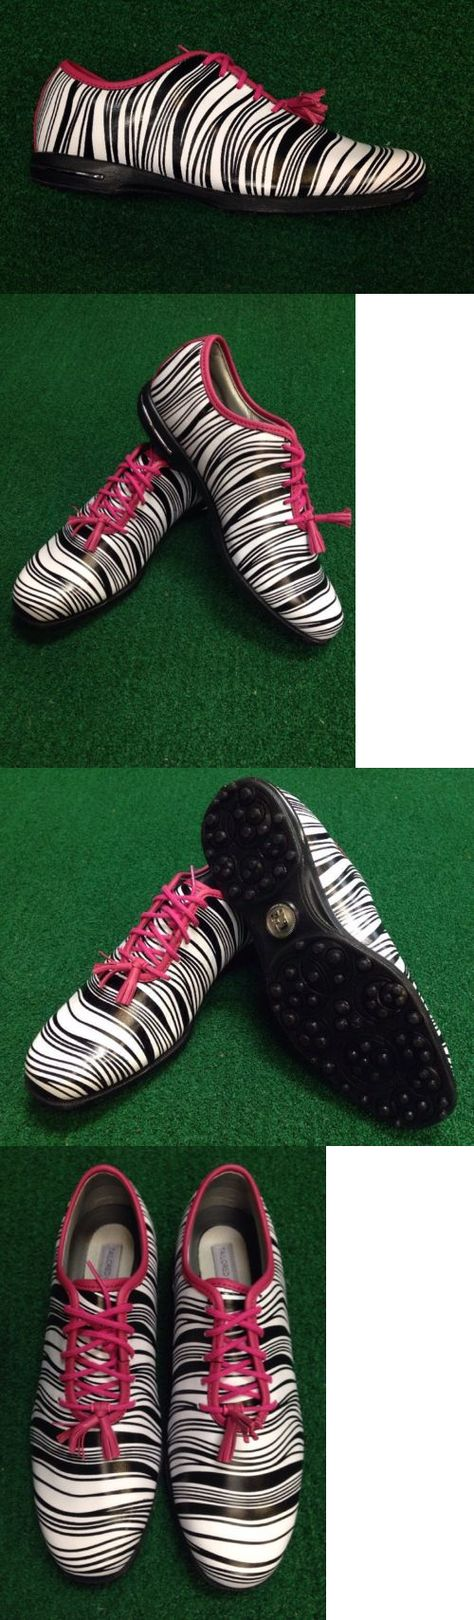 Golf Shoes 181147: Footjoy Tailored Collection Womens Golf Shoes #91652 Zebra New (Mfg Closeout) -> BUY IT NOW ONLY: $79 on eBay!